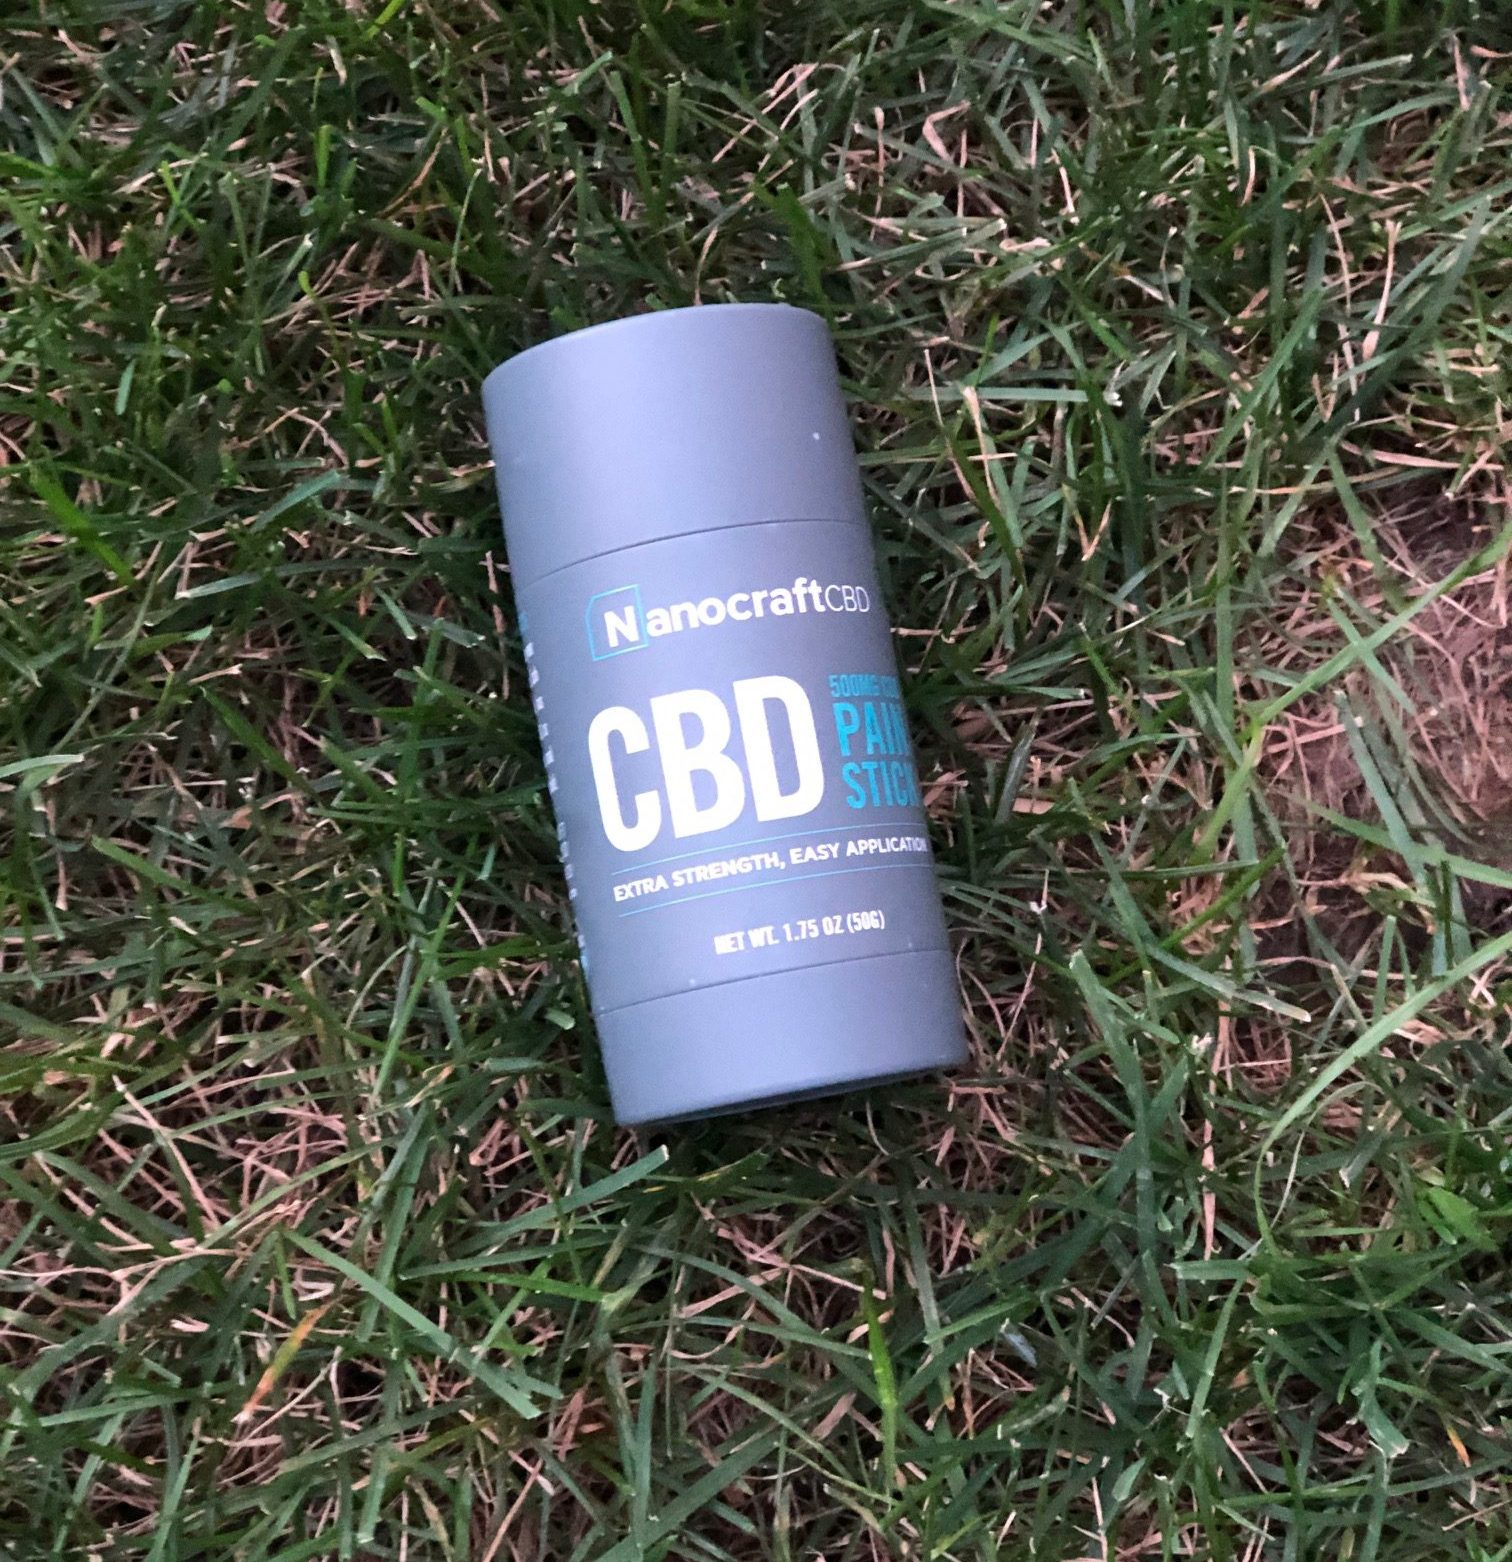 nanocraft-cbd-pain-stick